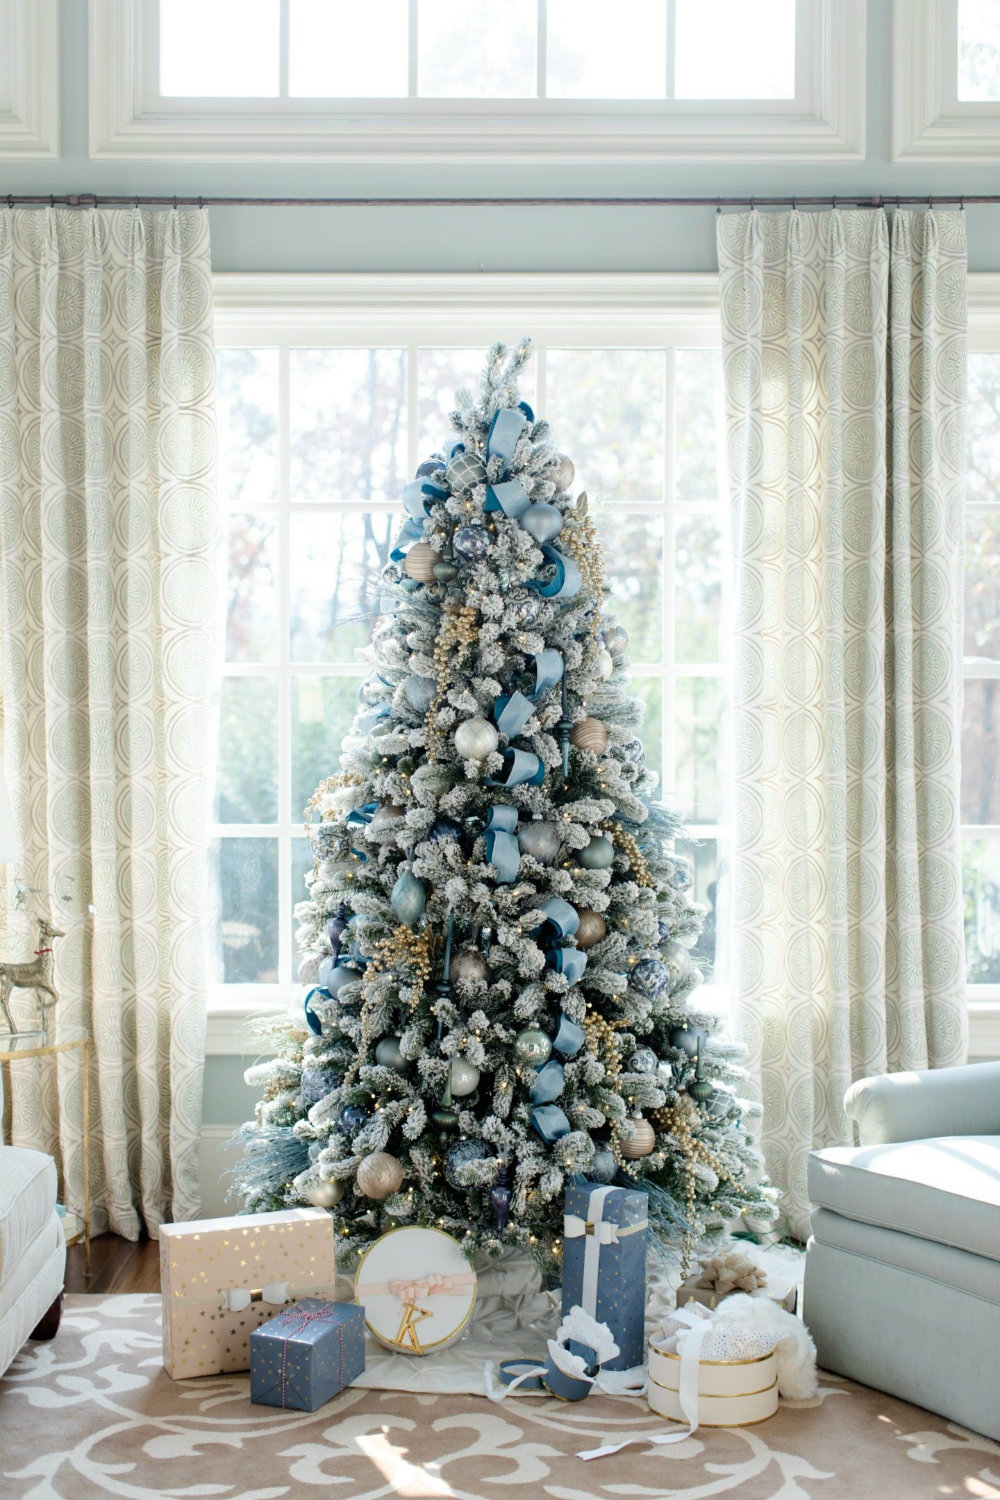 7 chic christmas decorations for the most memorable holiday 04 chic christmas decorations 7 chic christmas - Chic Christmas Decorations